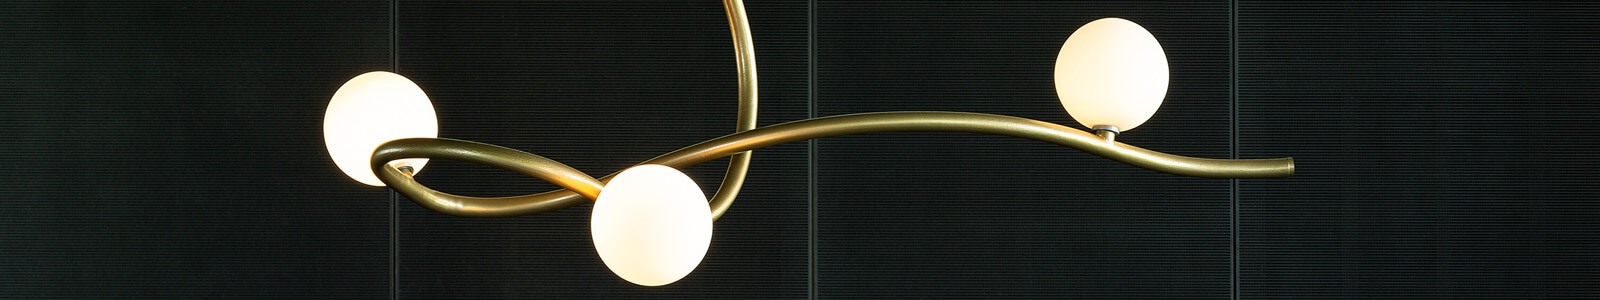 Hubbardton Forge Lighting: Chandeliers, Pendants & Lamps Banner